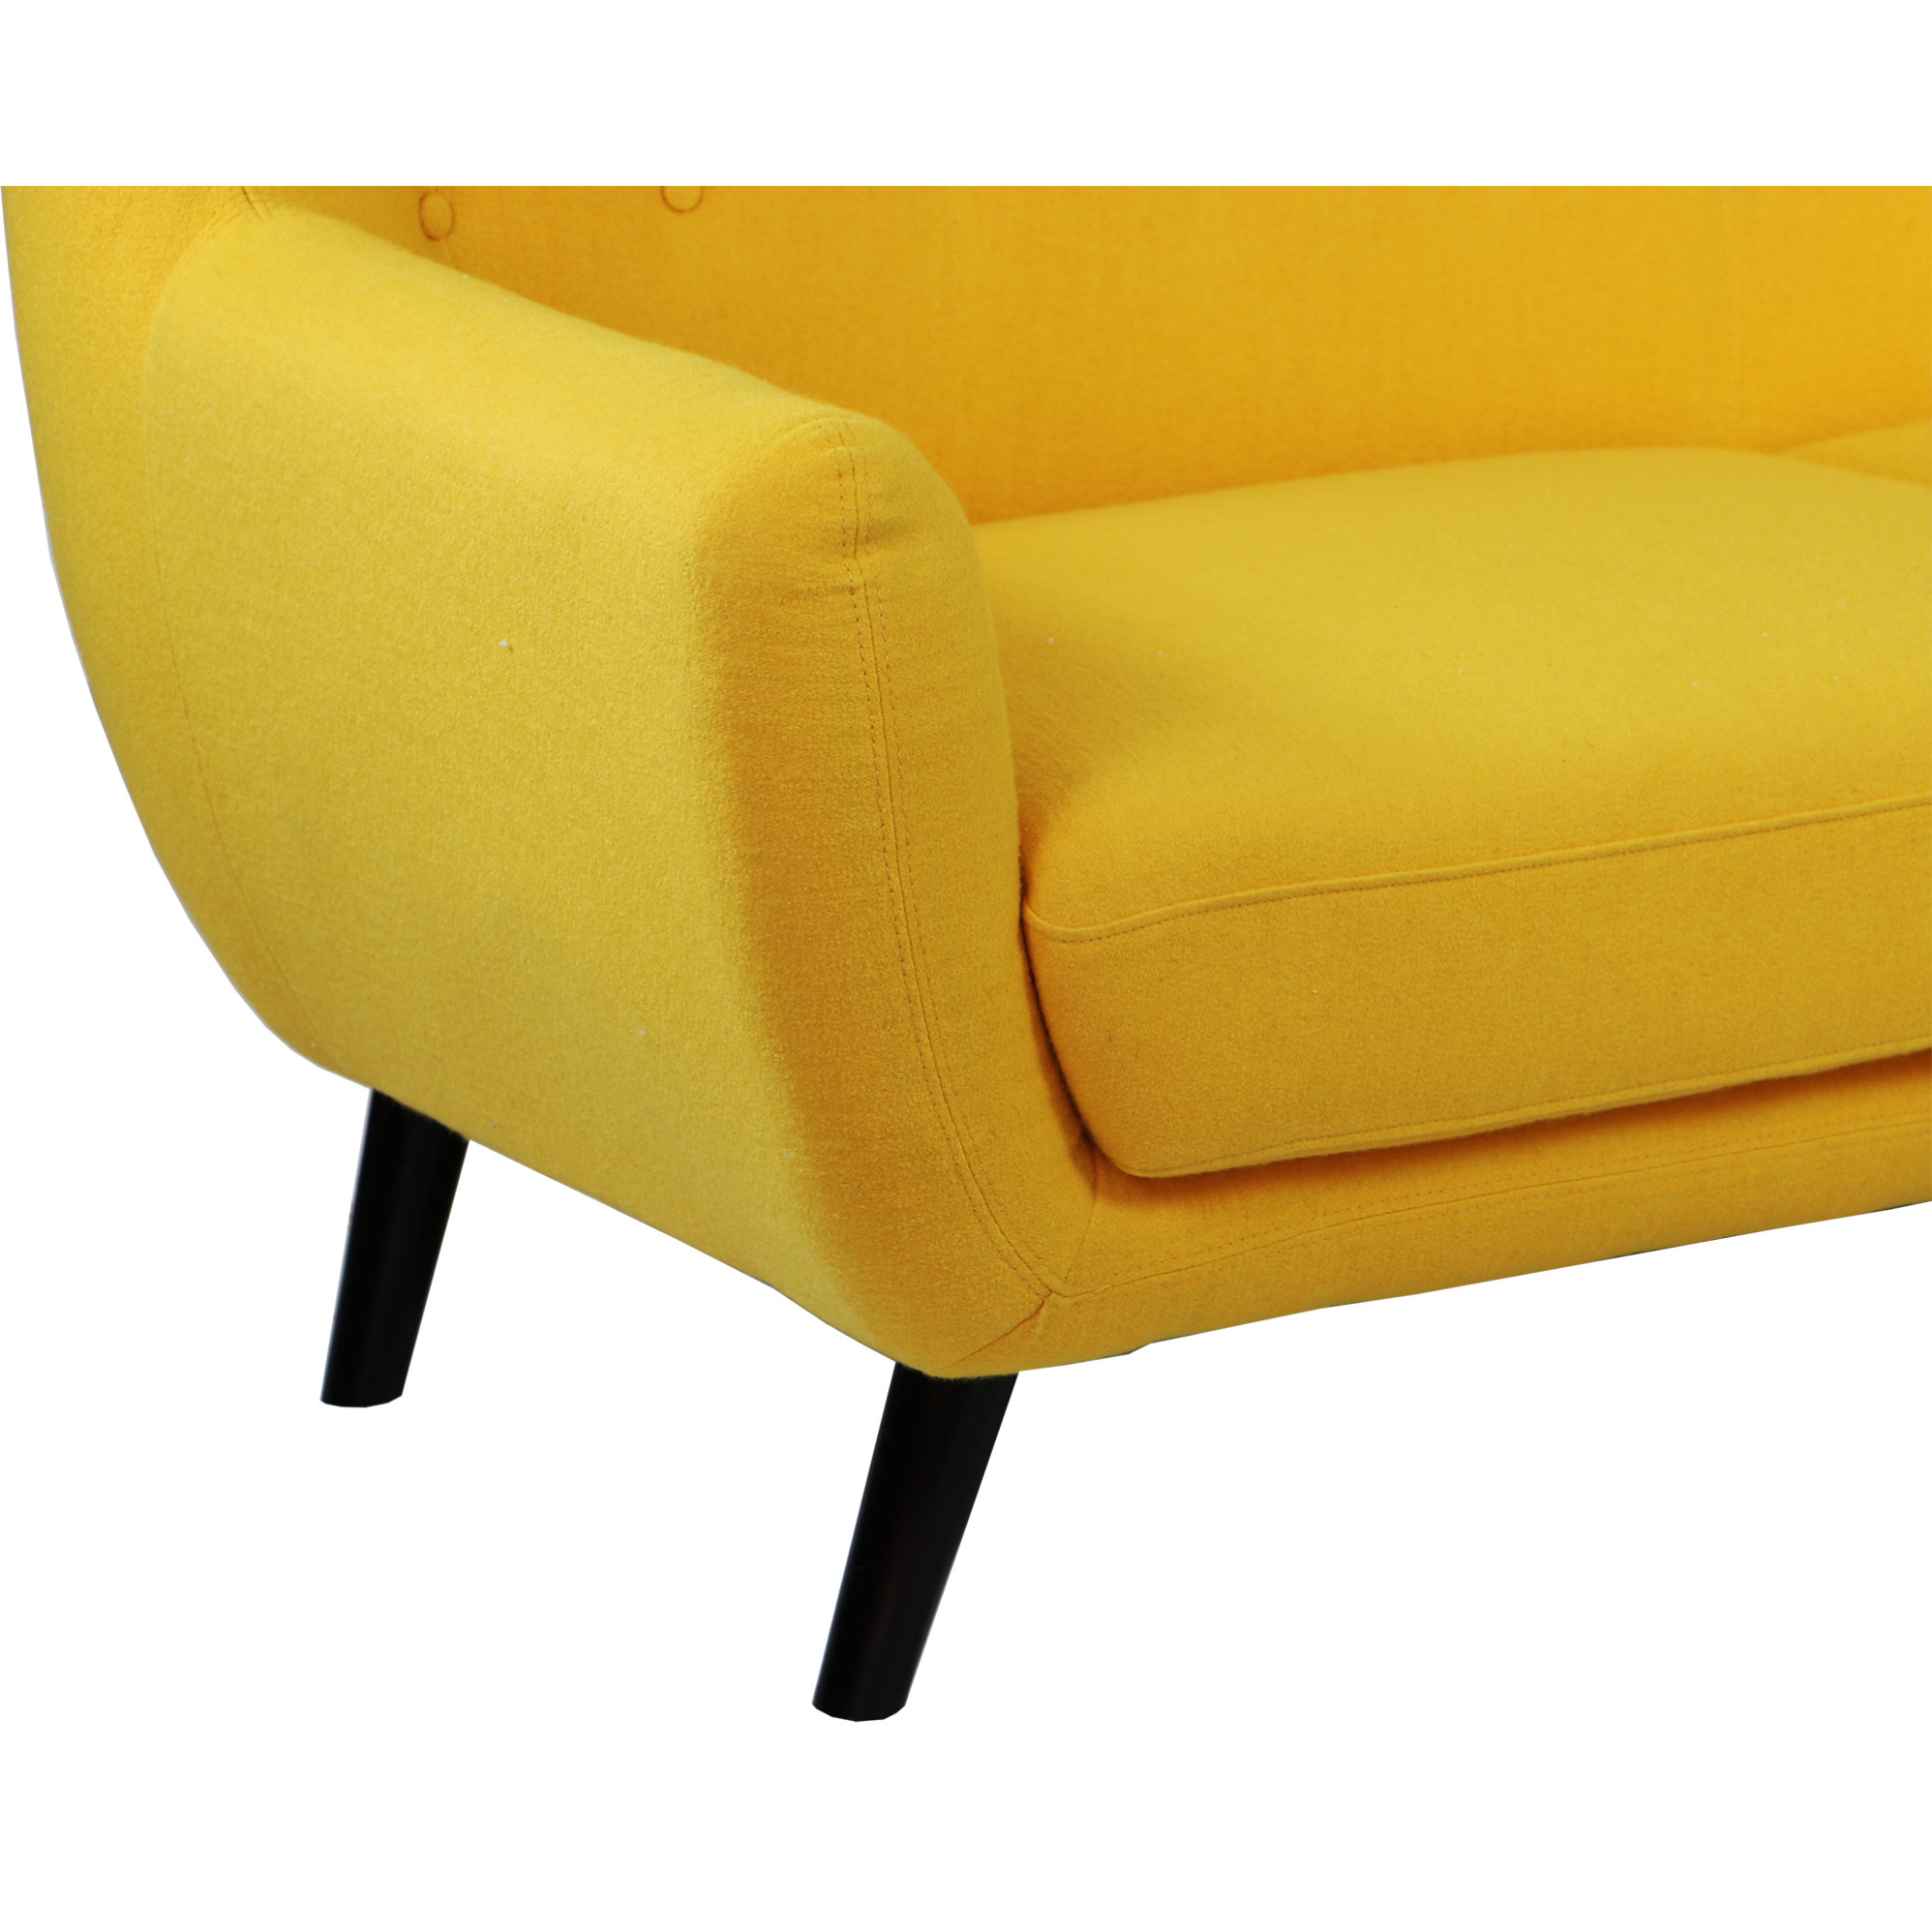 Replica wingback designer 2 seater sofa yellow for Designer sofa replica